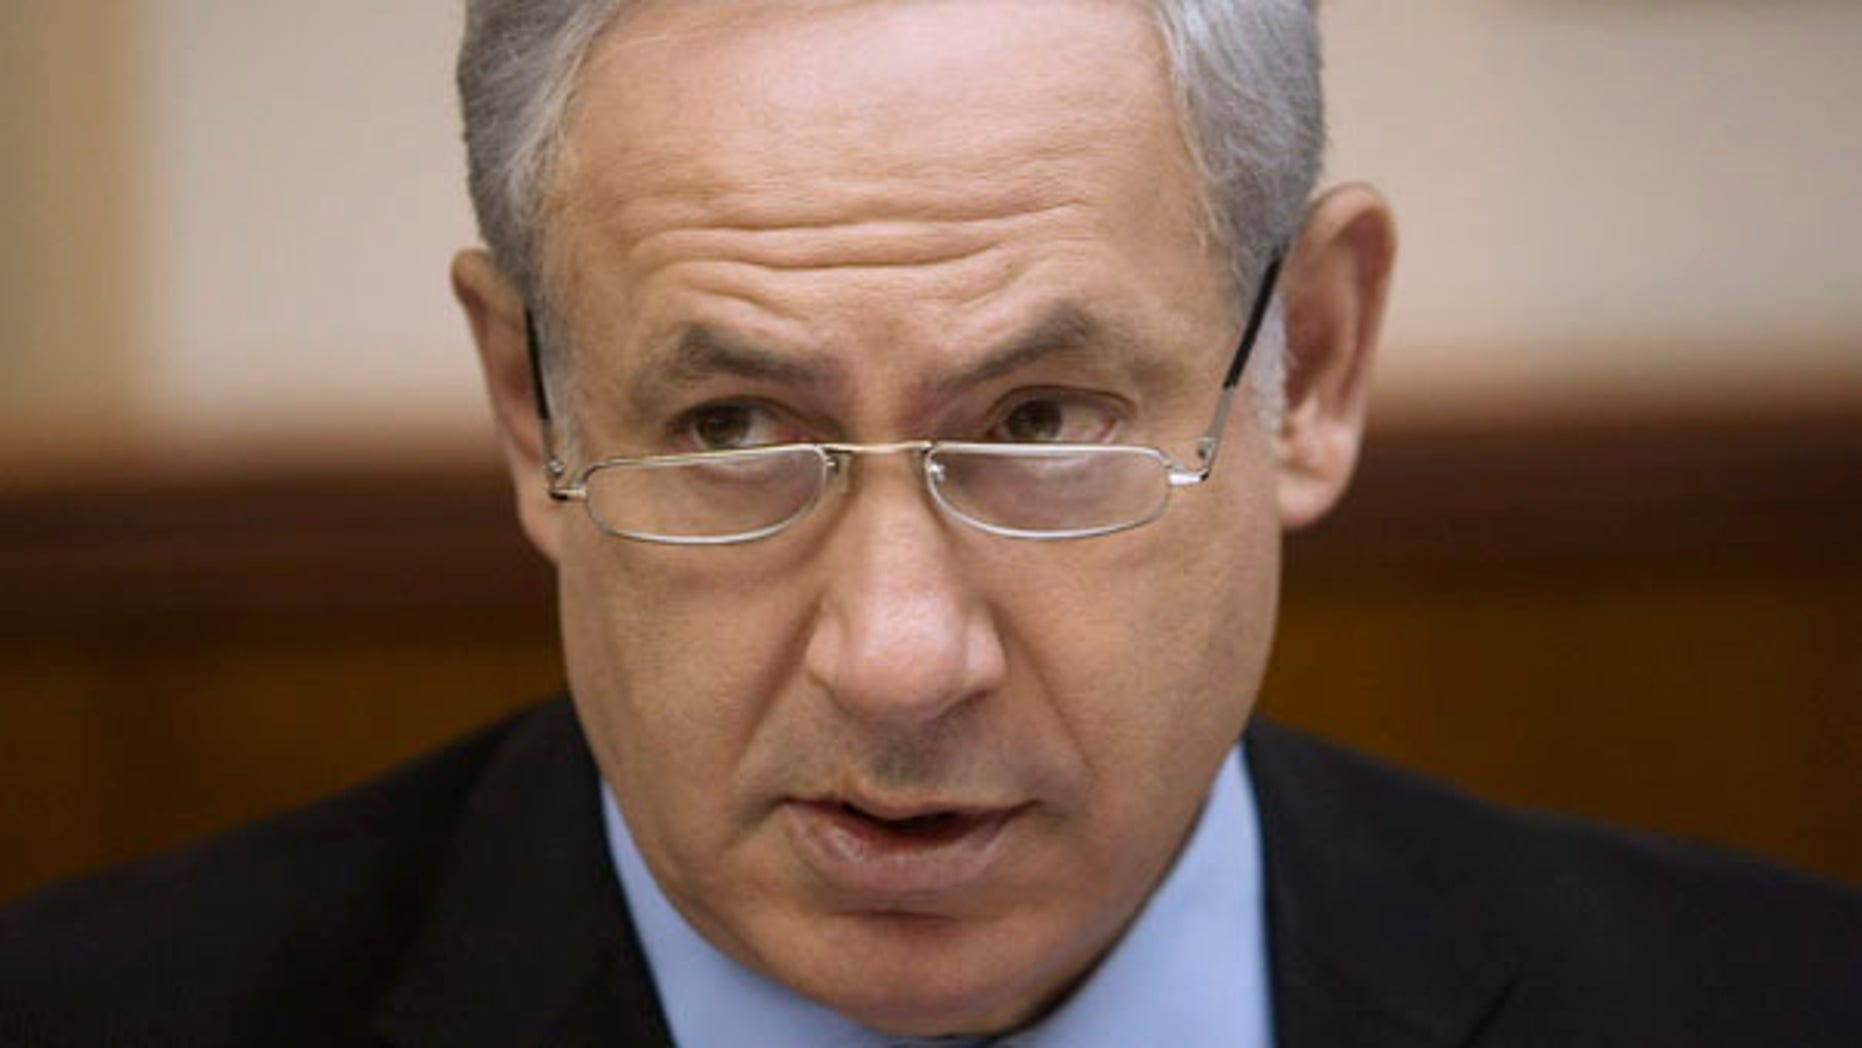 Israeli Prime Minister Benjamin Netanyahu, speaks during the weekly cabinet meeting at his Jerusalem office, Sunday, June. 27, 2010. (AP Photos/Dan Balilty, Pool)